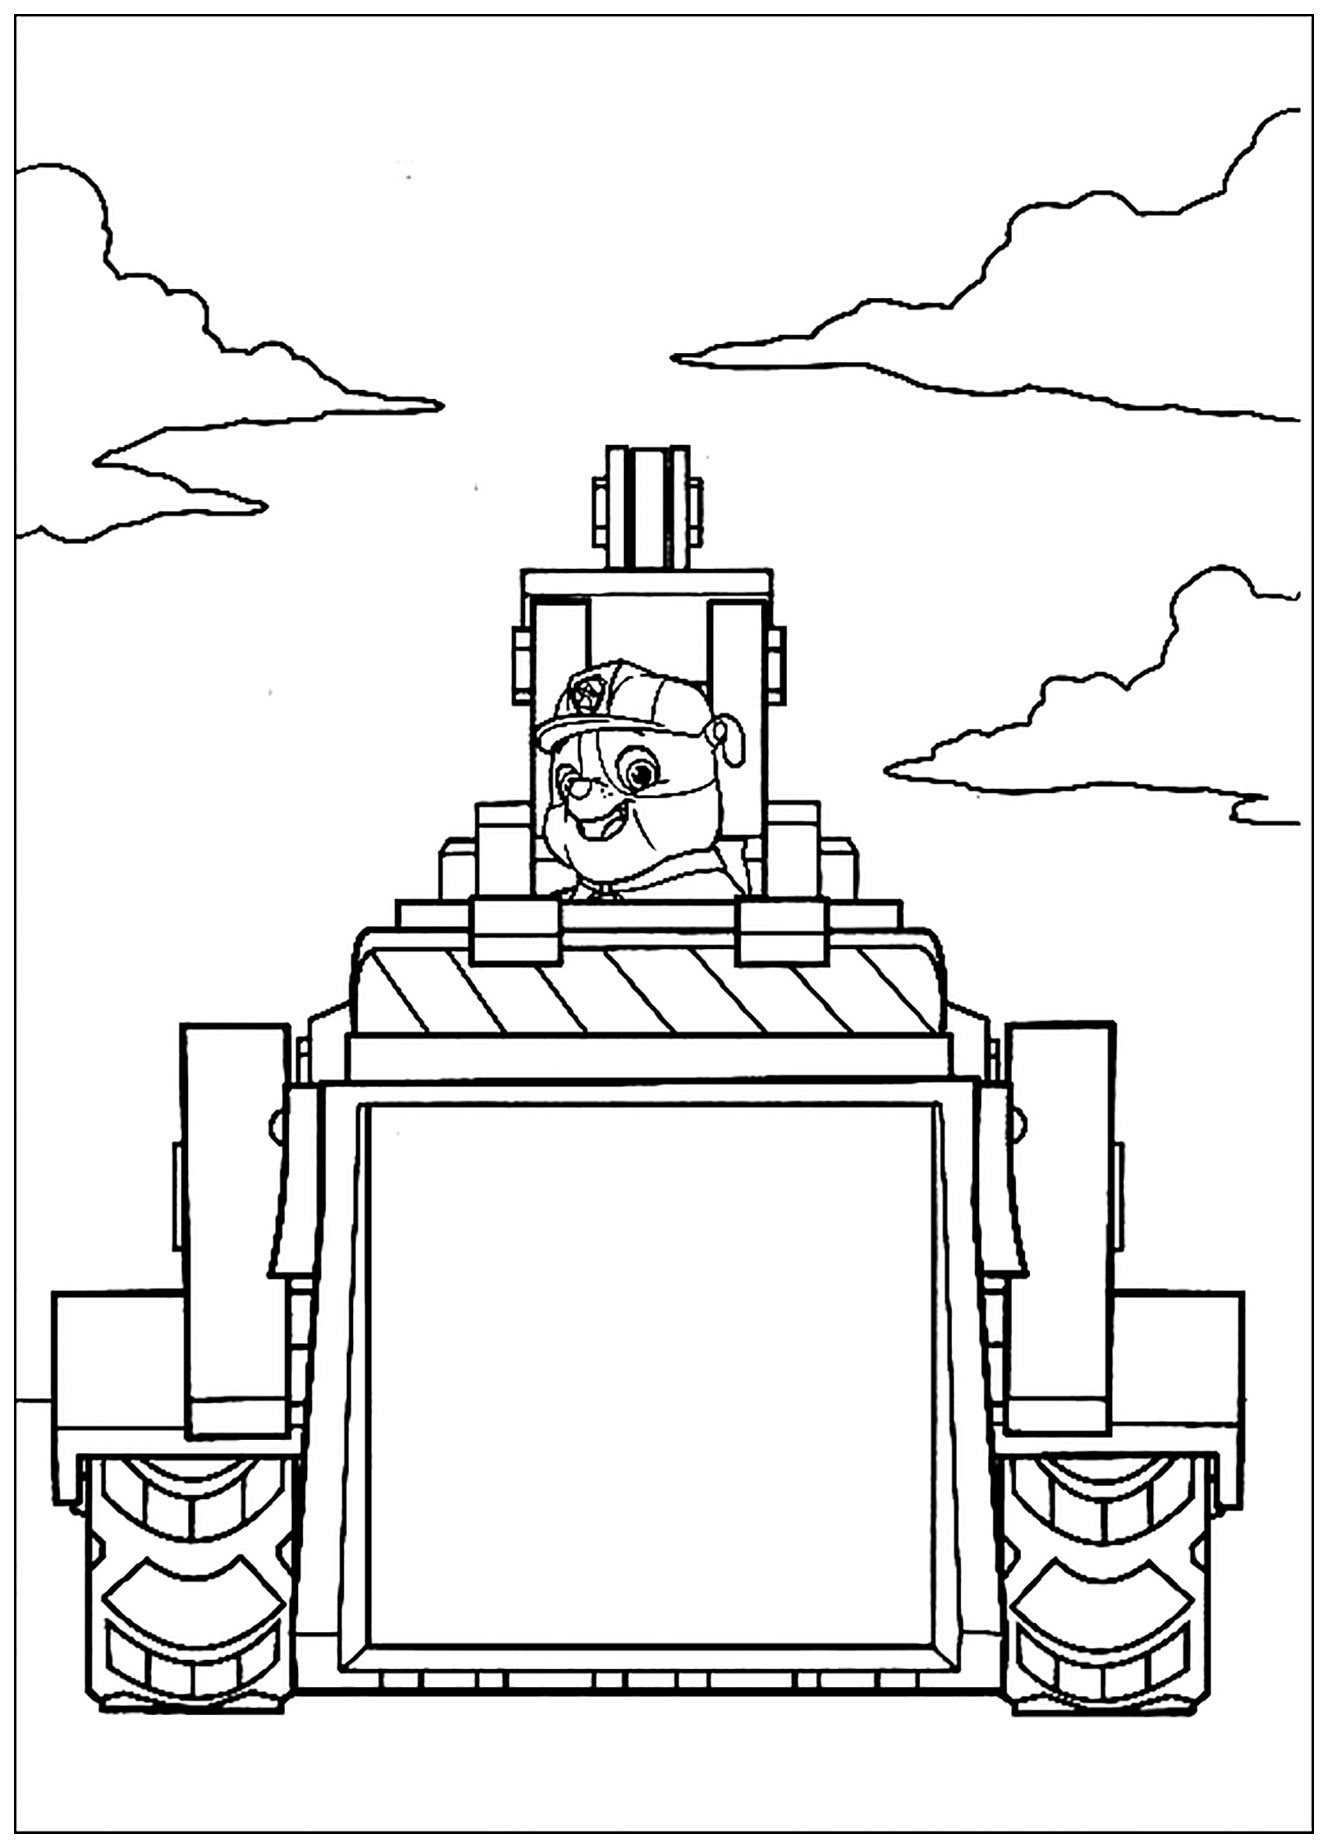 Paw Patrol To Color For Kids Paw Patrol Kids Coloring Pages